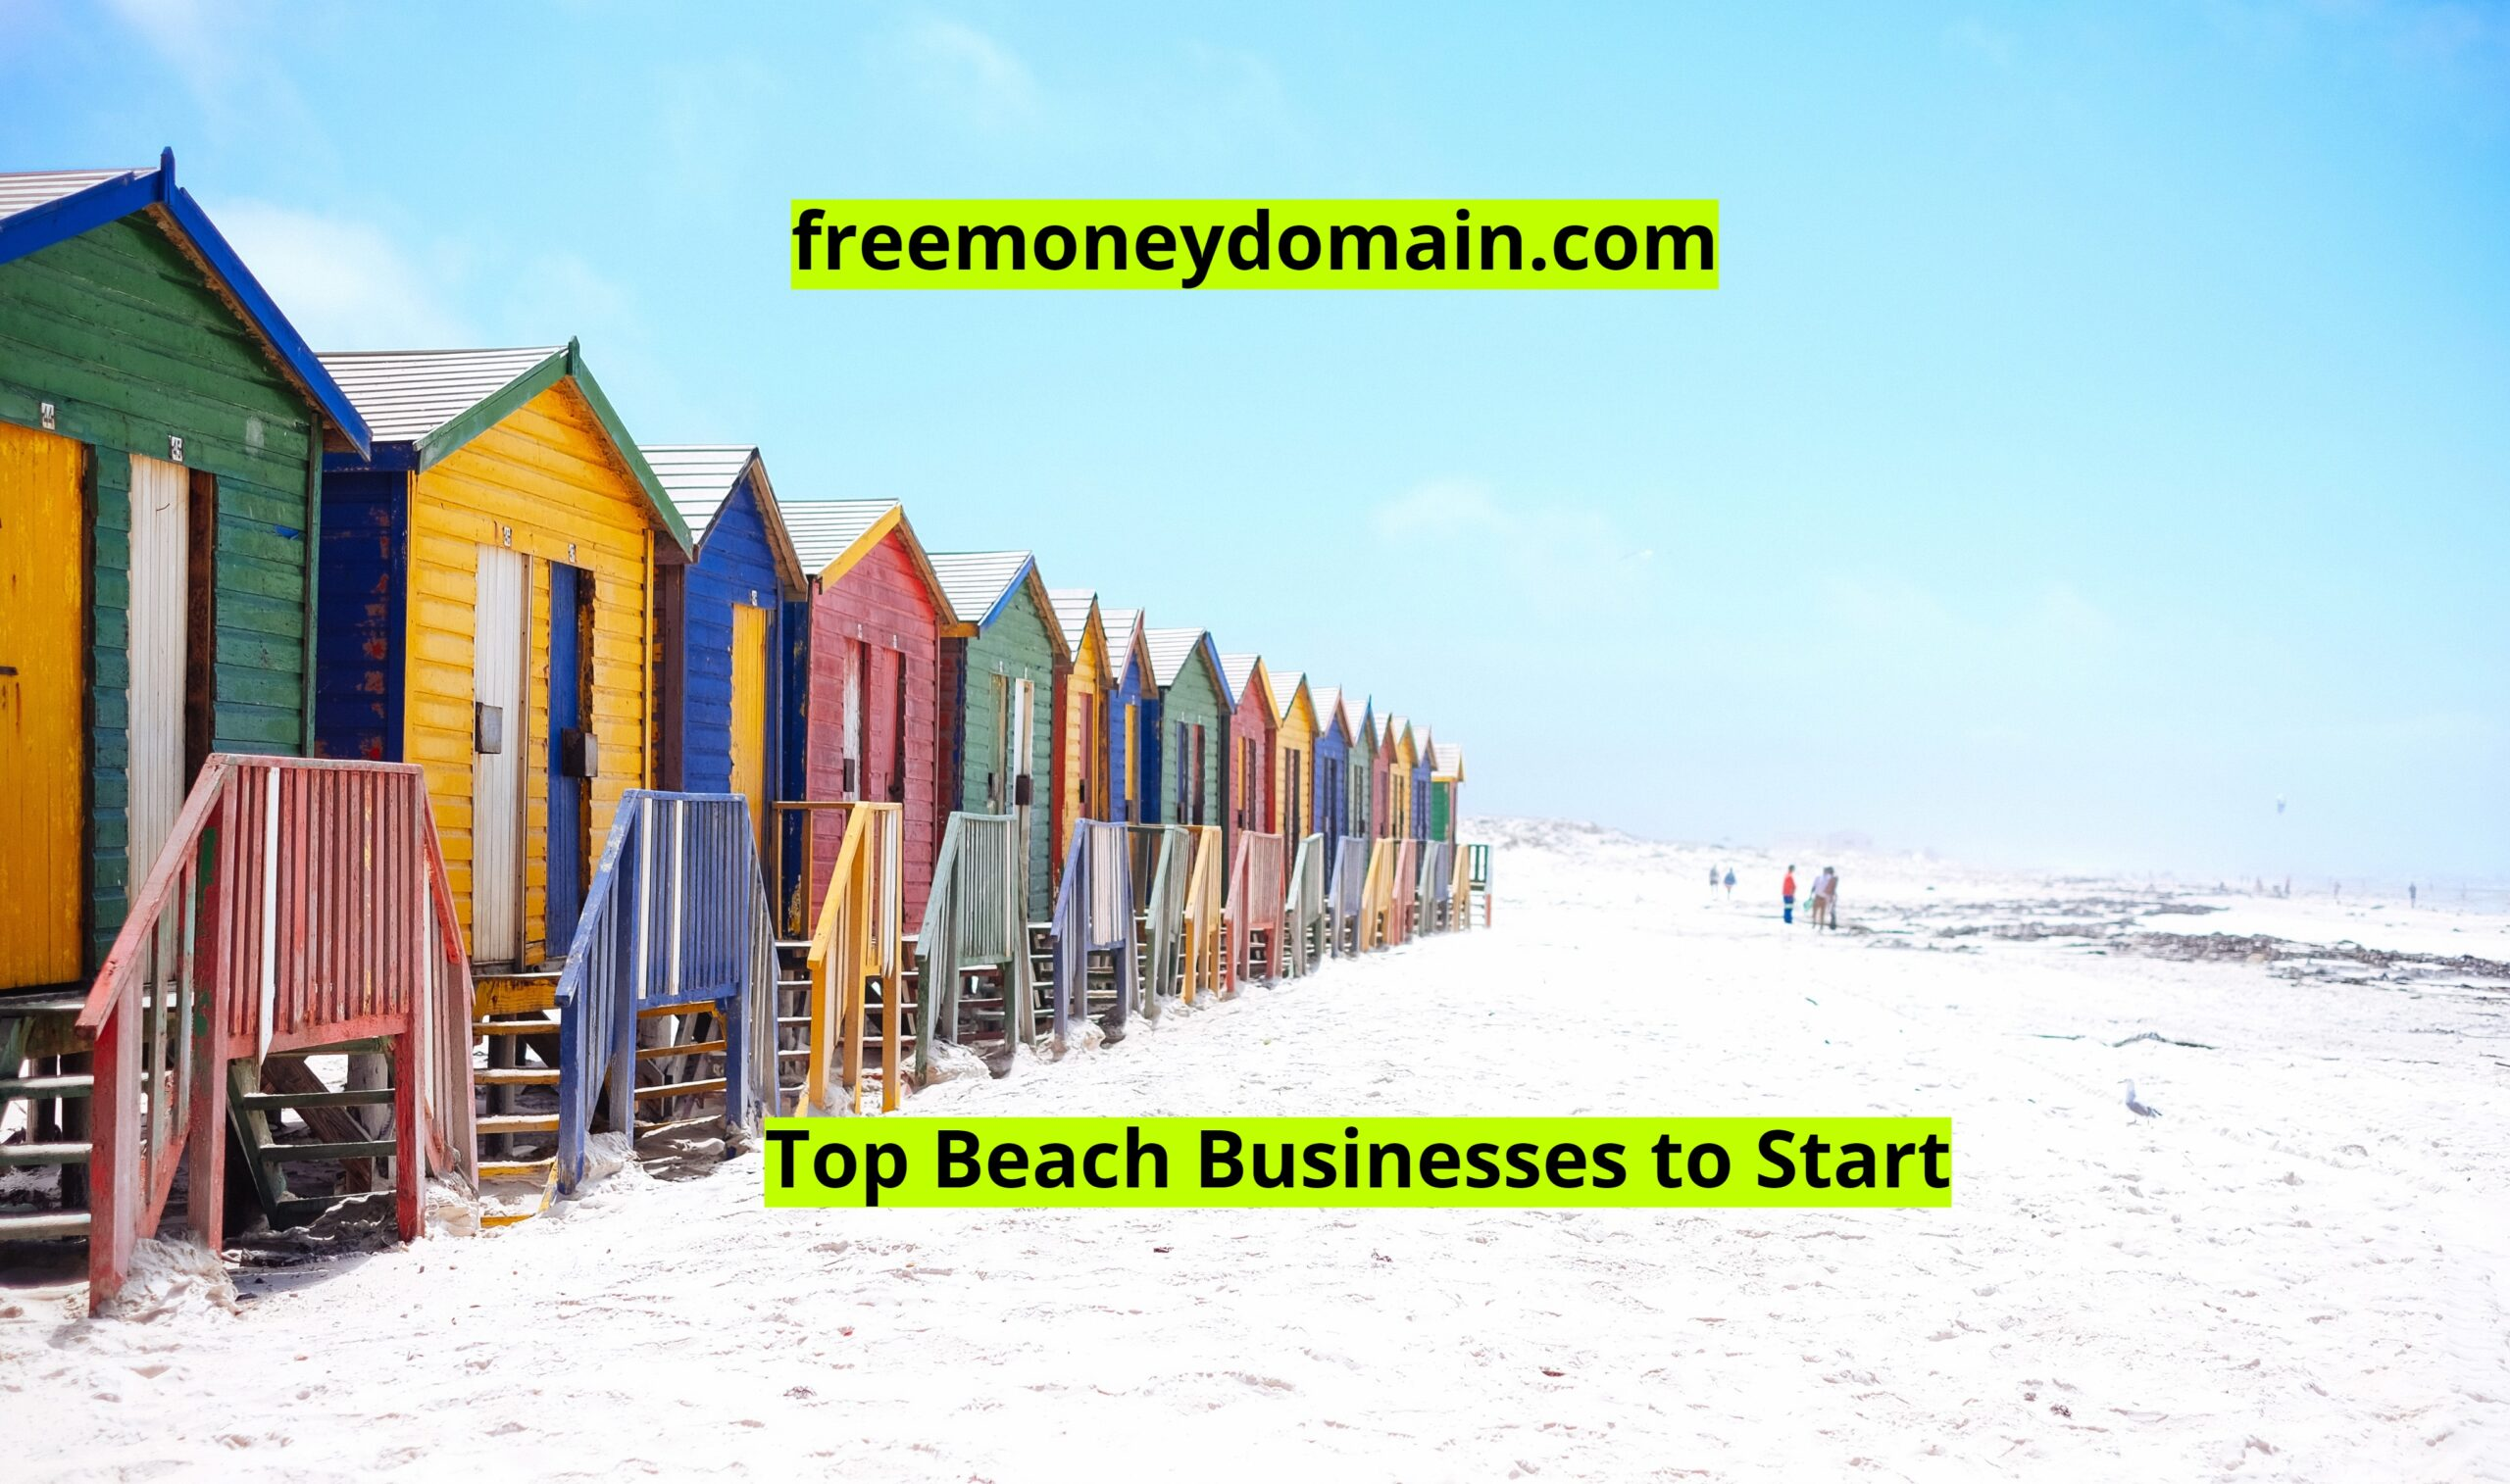 Top Beach Businesses to Start in 2021